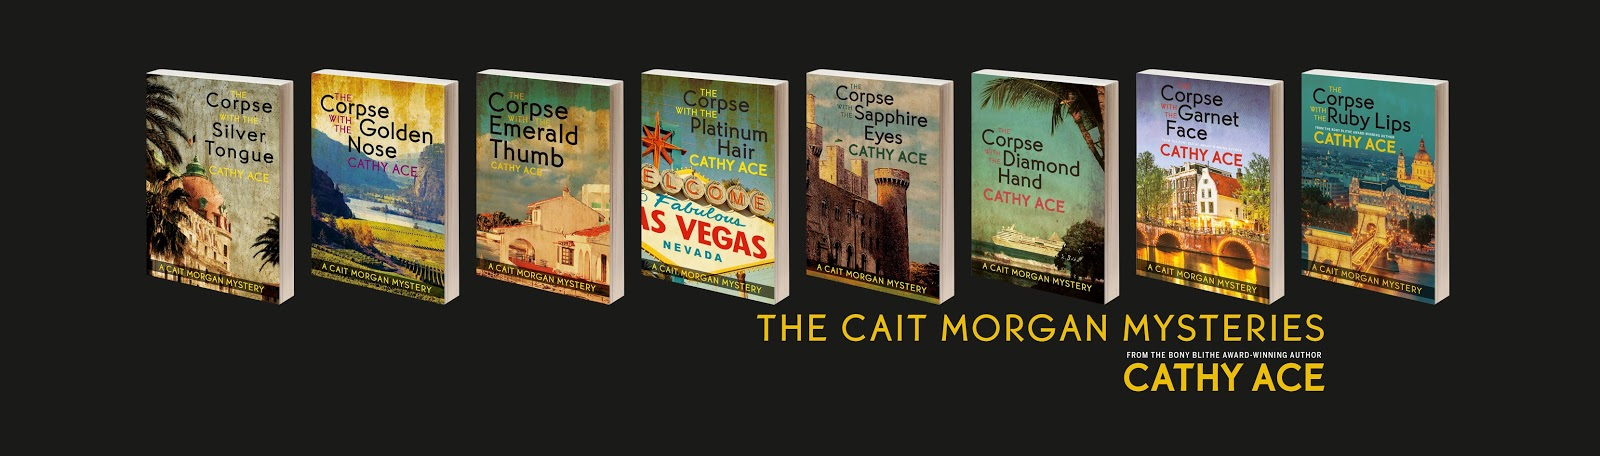 Criminal Minds In For The Long Haul By Cathy Ace